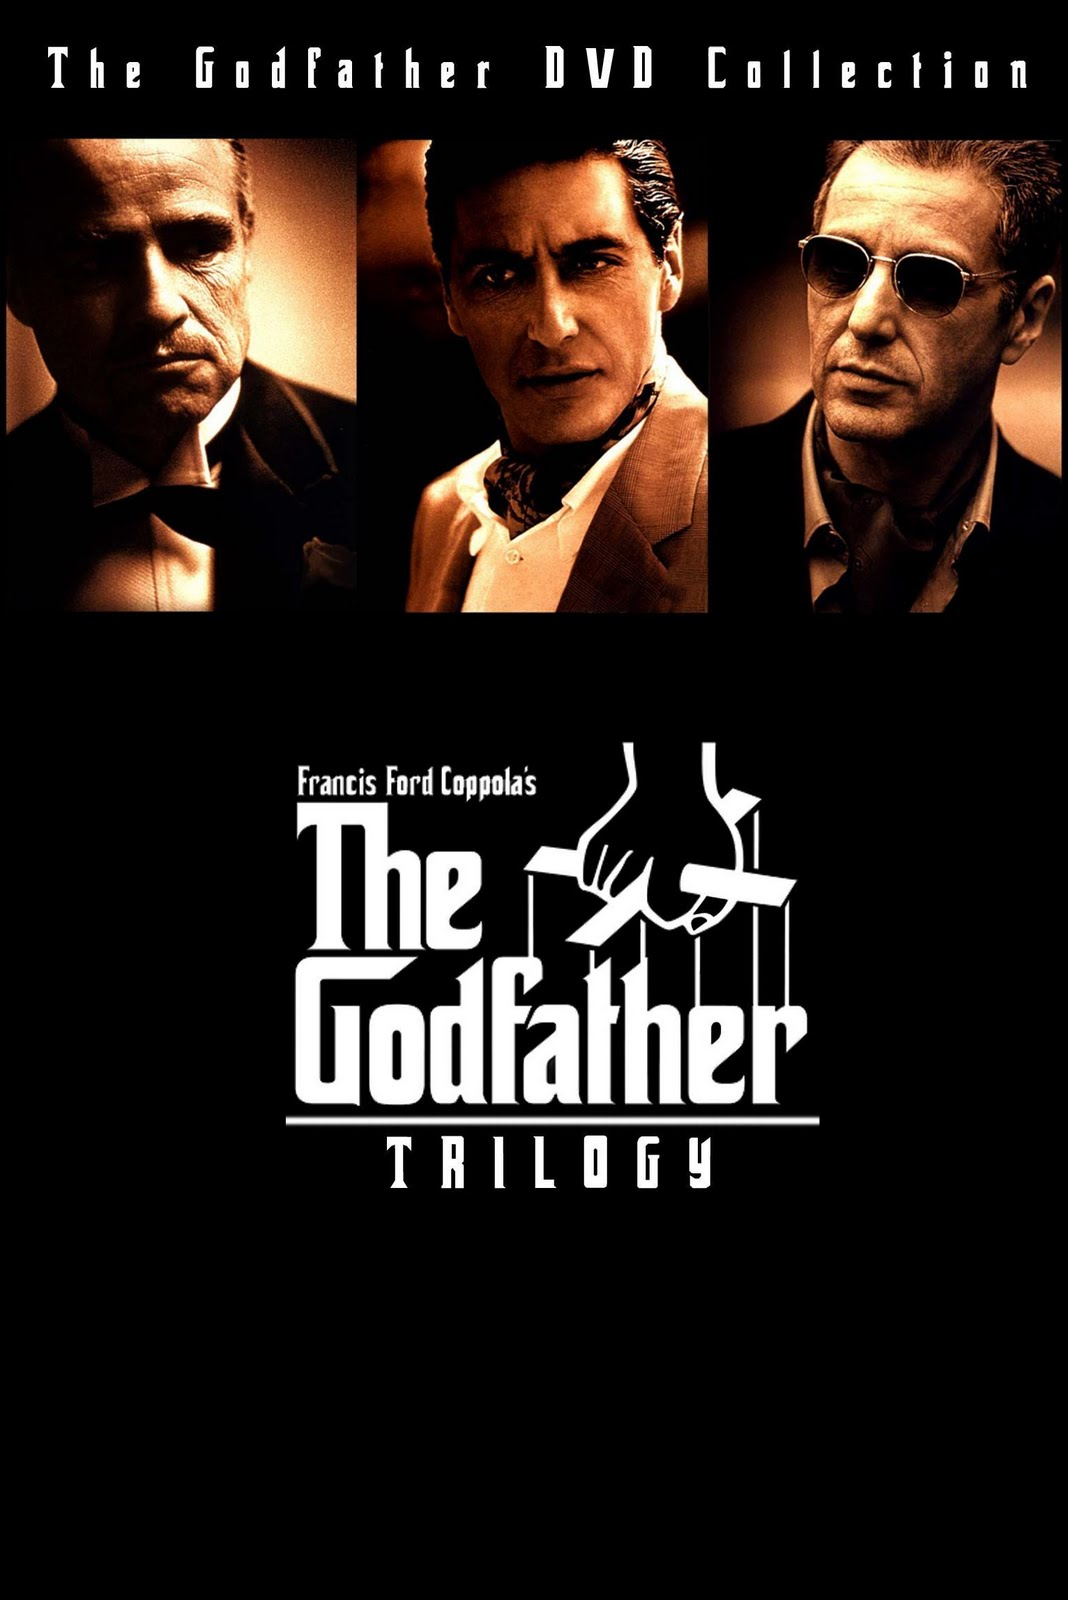 the godfather a summary and review The godfather shows how an orphaned sicilian immigrant rises to the top of organized crime in america and how his son, who at first shuns his father's world, comes to embrace his father's way.